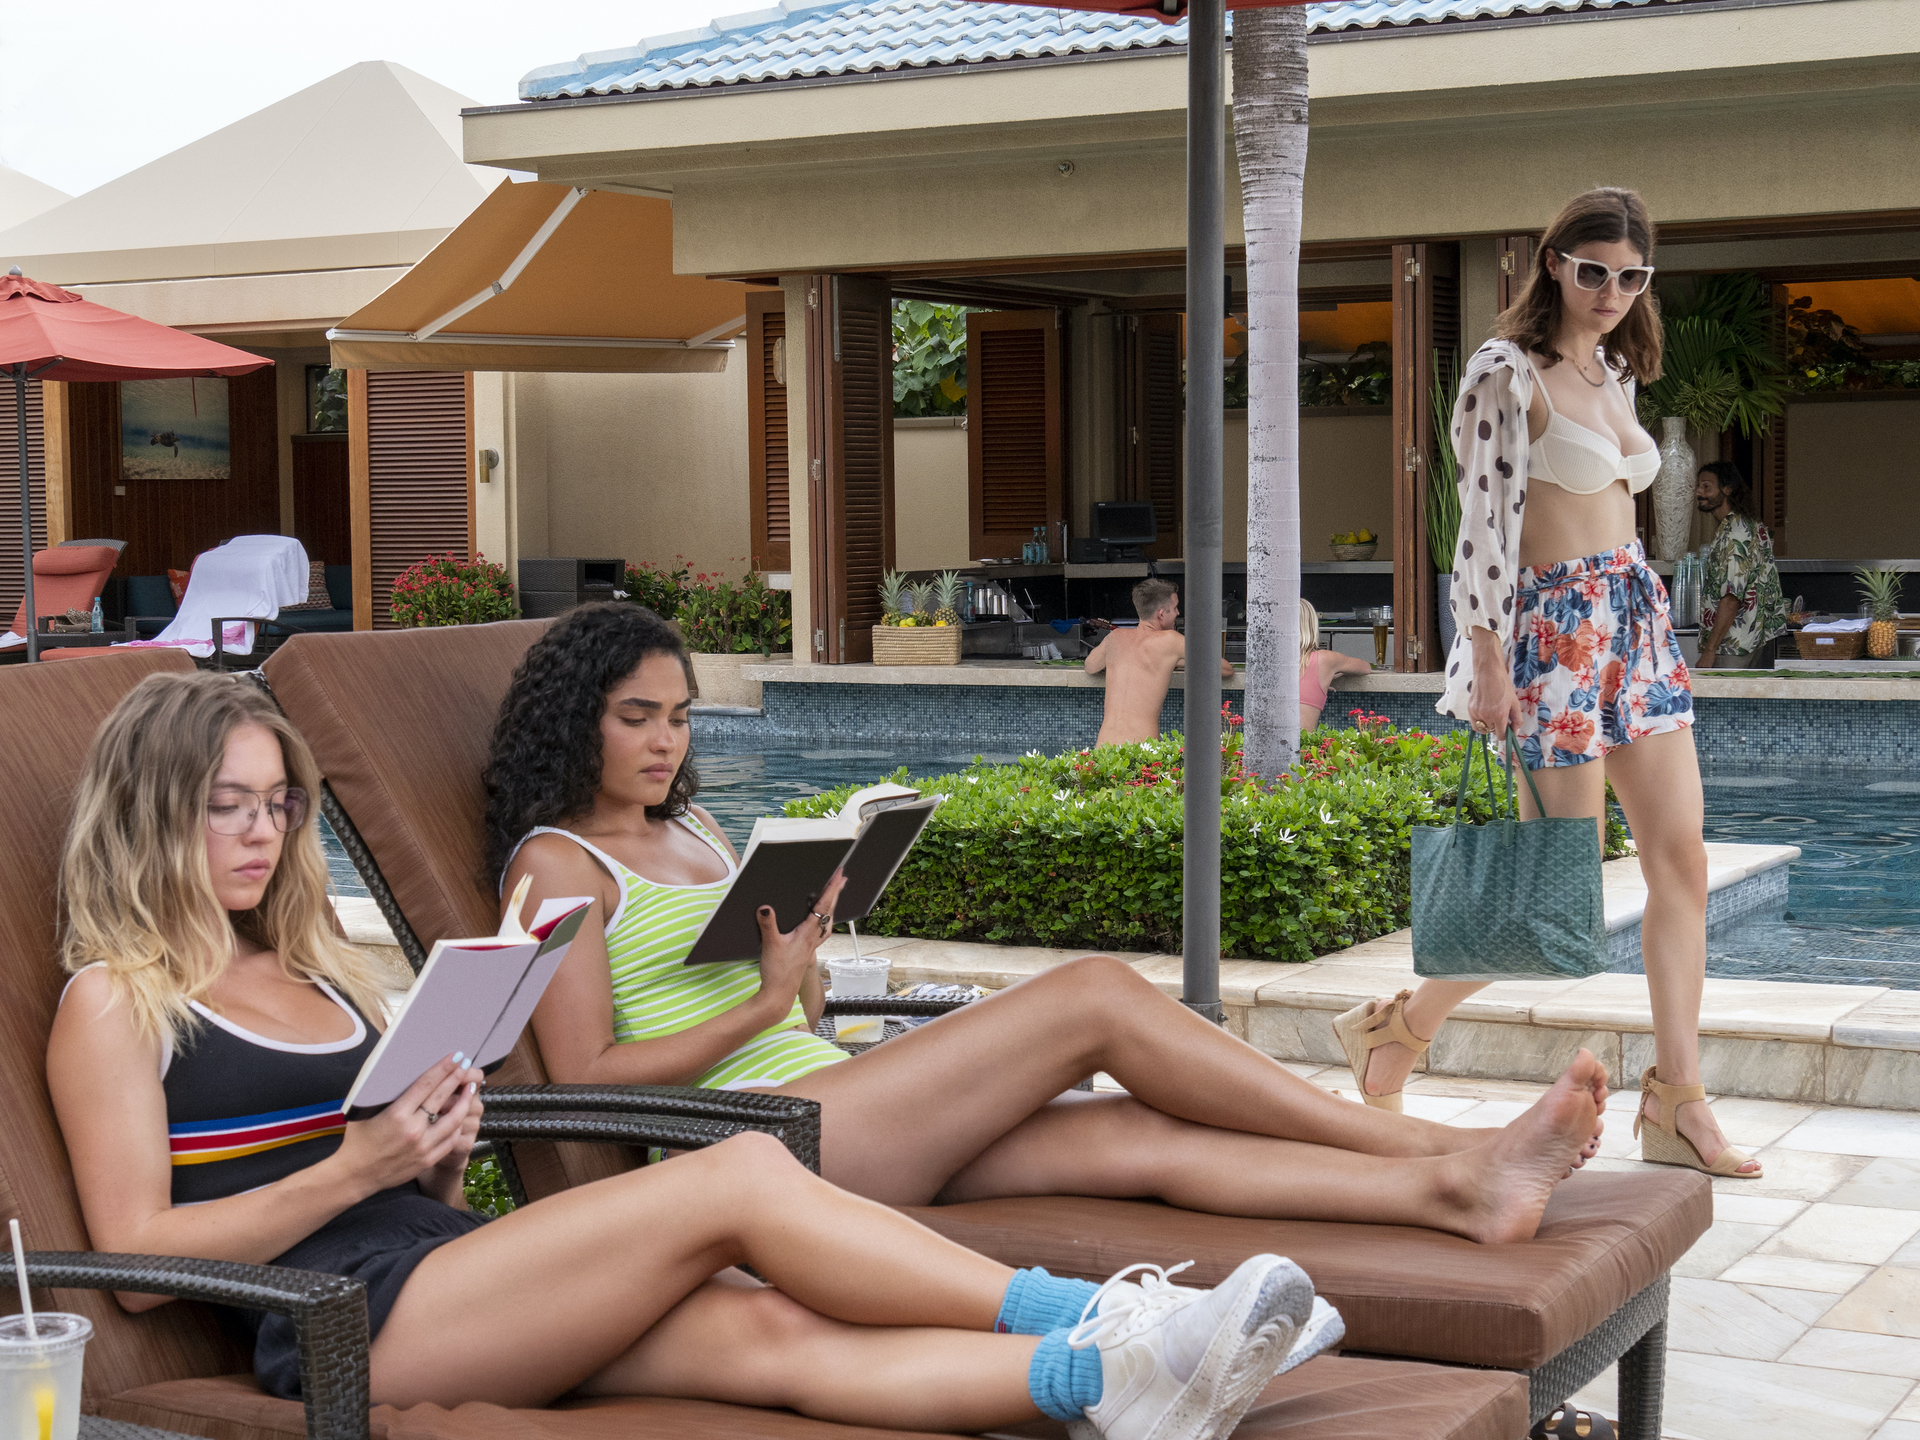 Olivia and Paula sit by the pool reading, as Rachel passes them in a bikini.